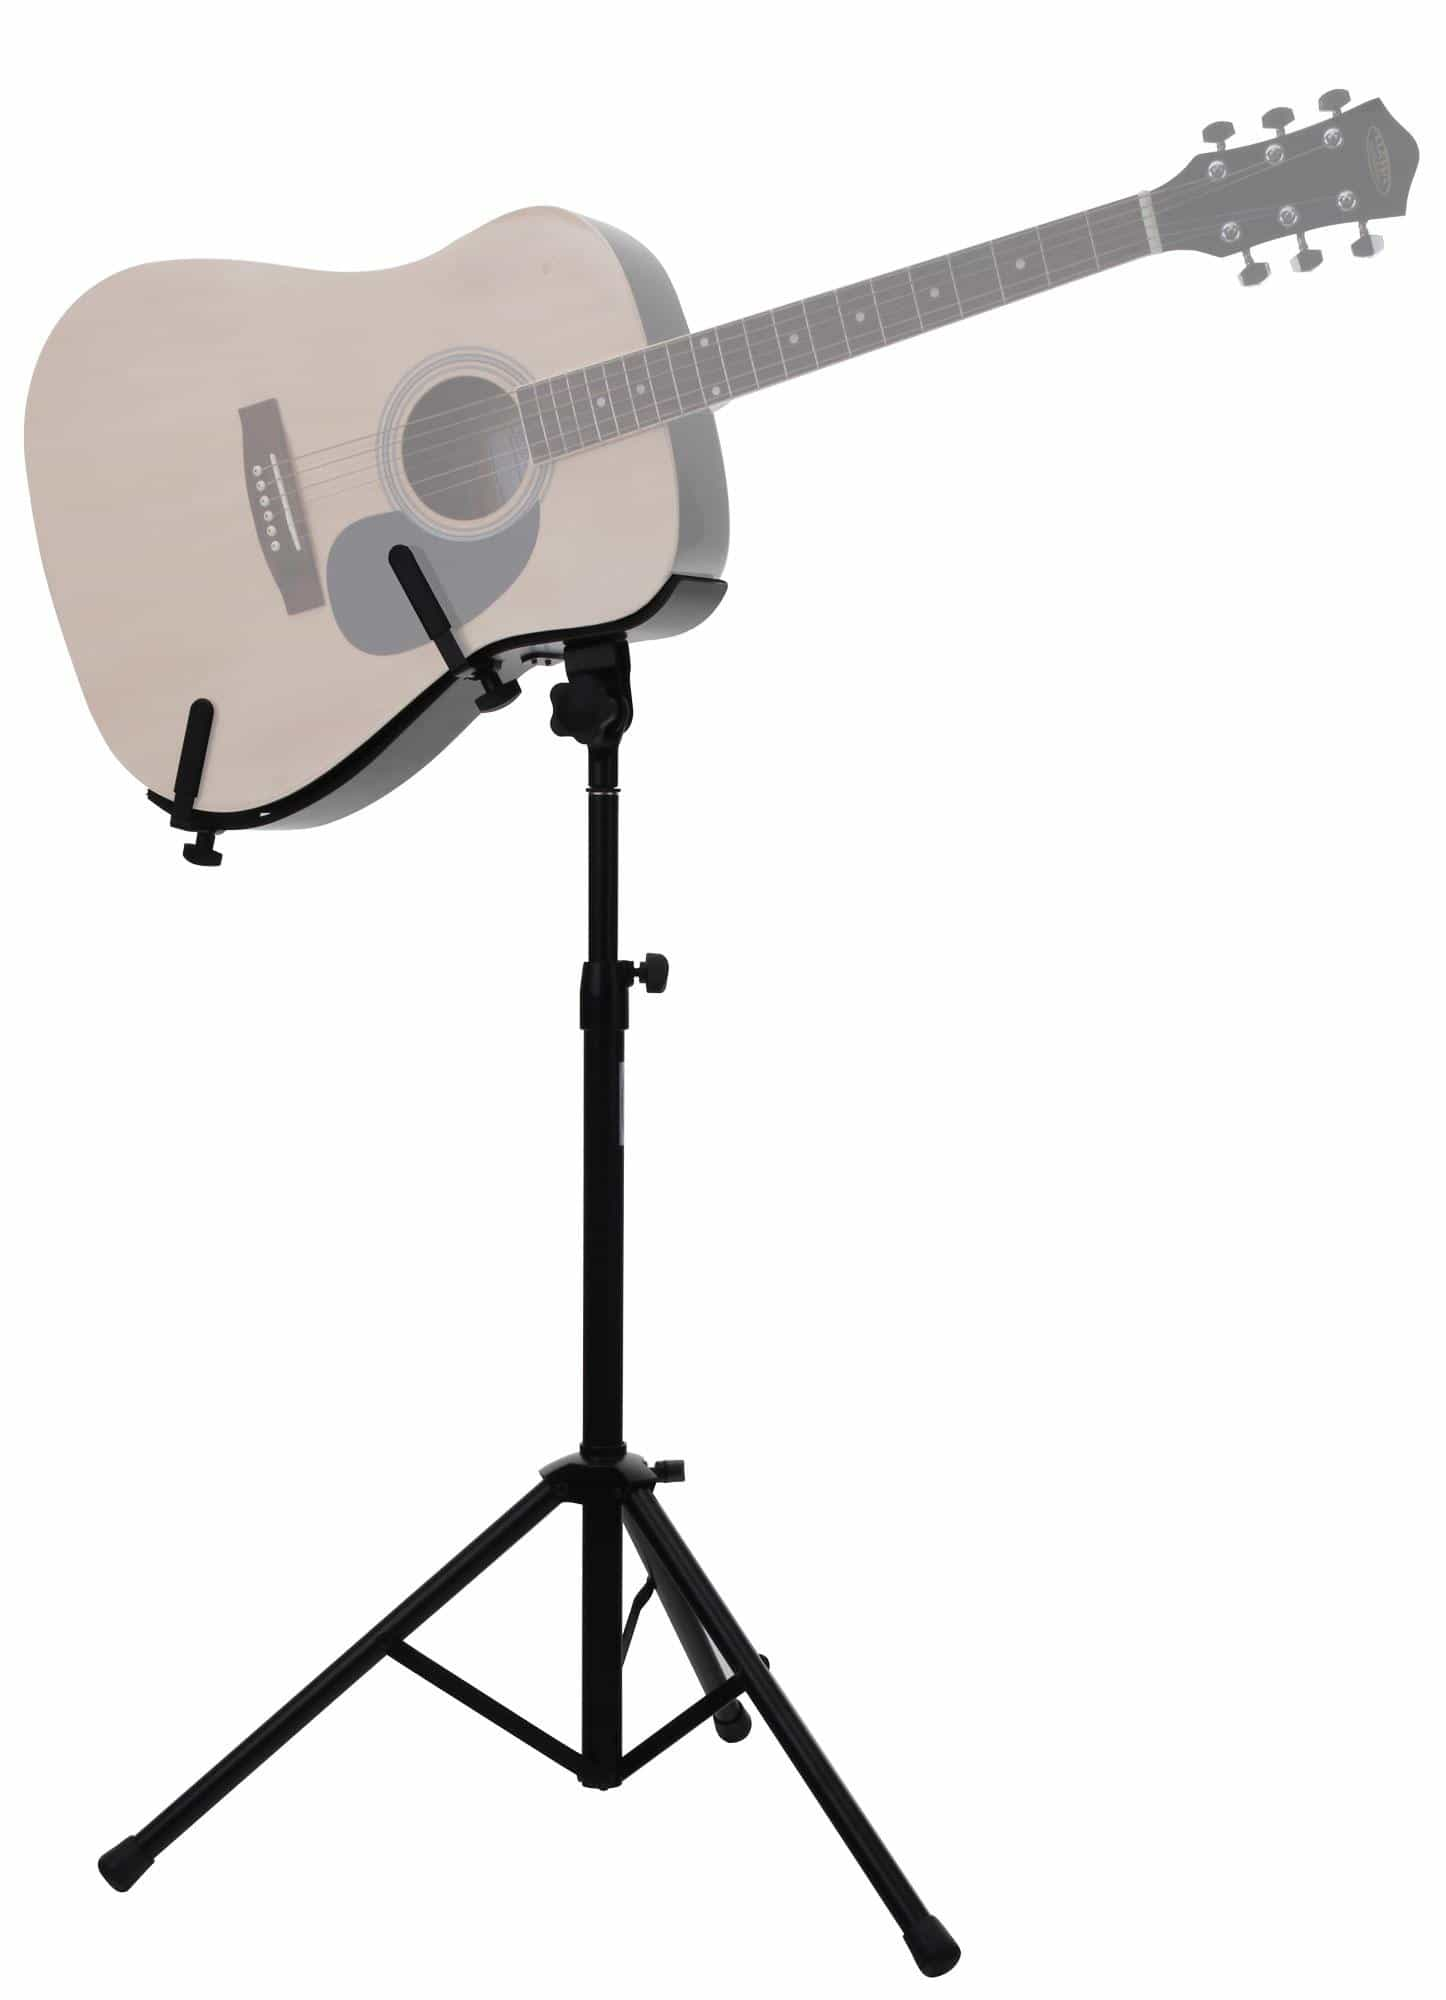 classic cantabile gs 100 stage guitar stand kirstein music shop. Black Bedroom Furniture Sets. Home Design Ideas